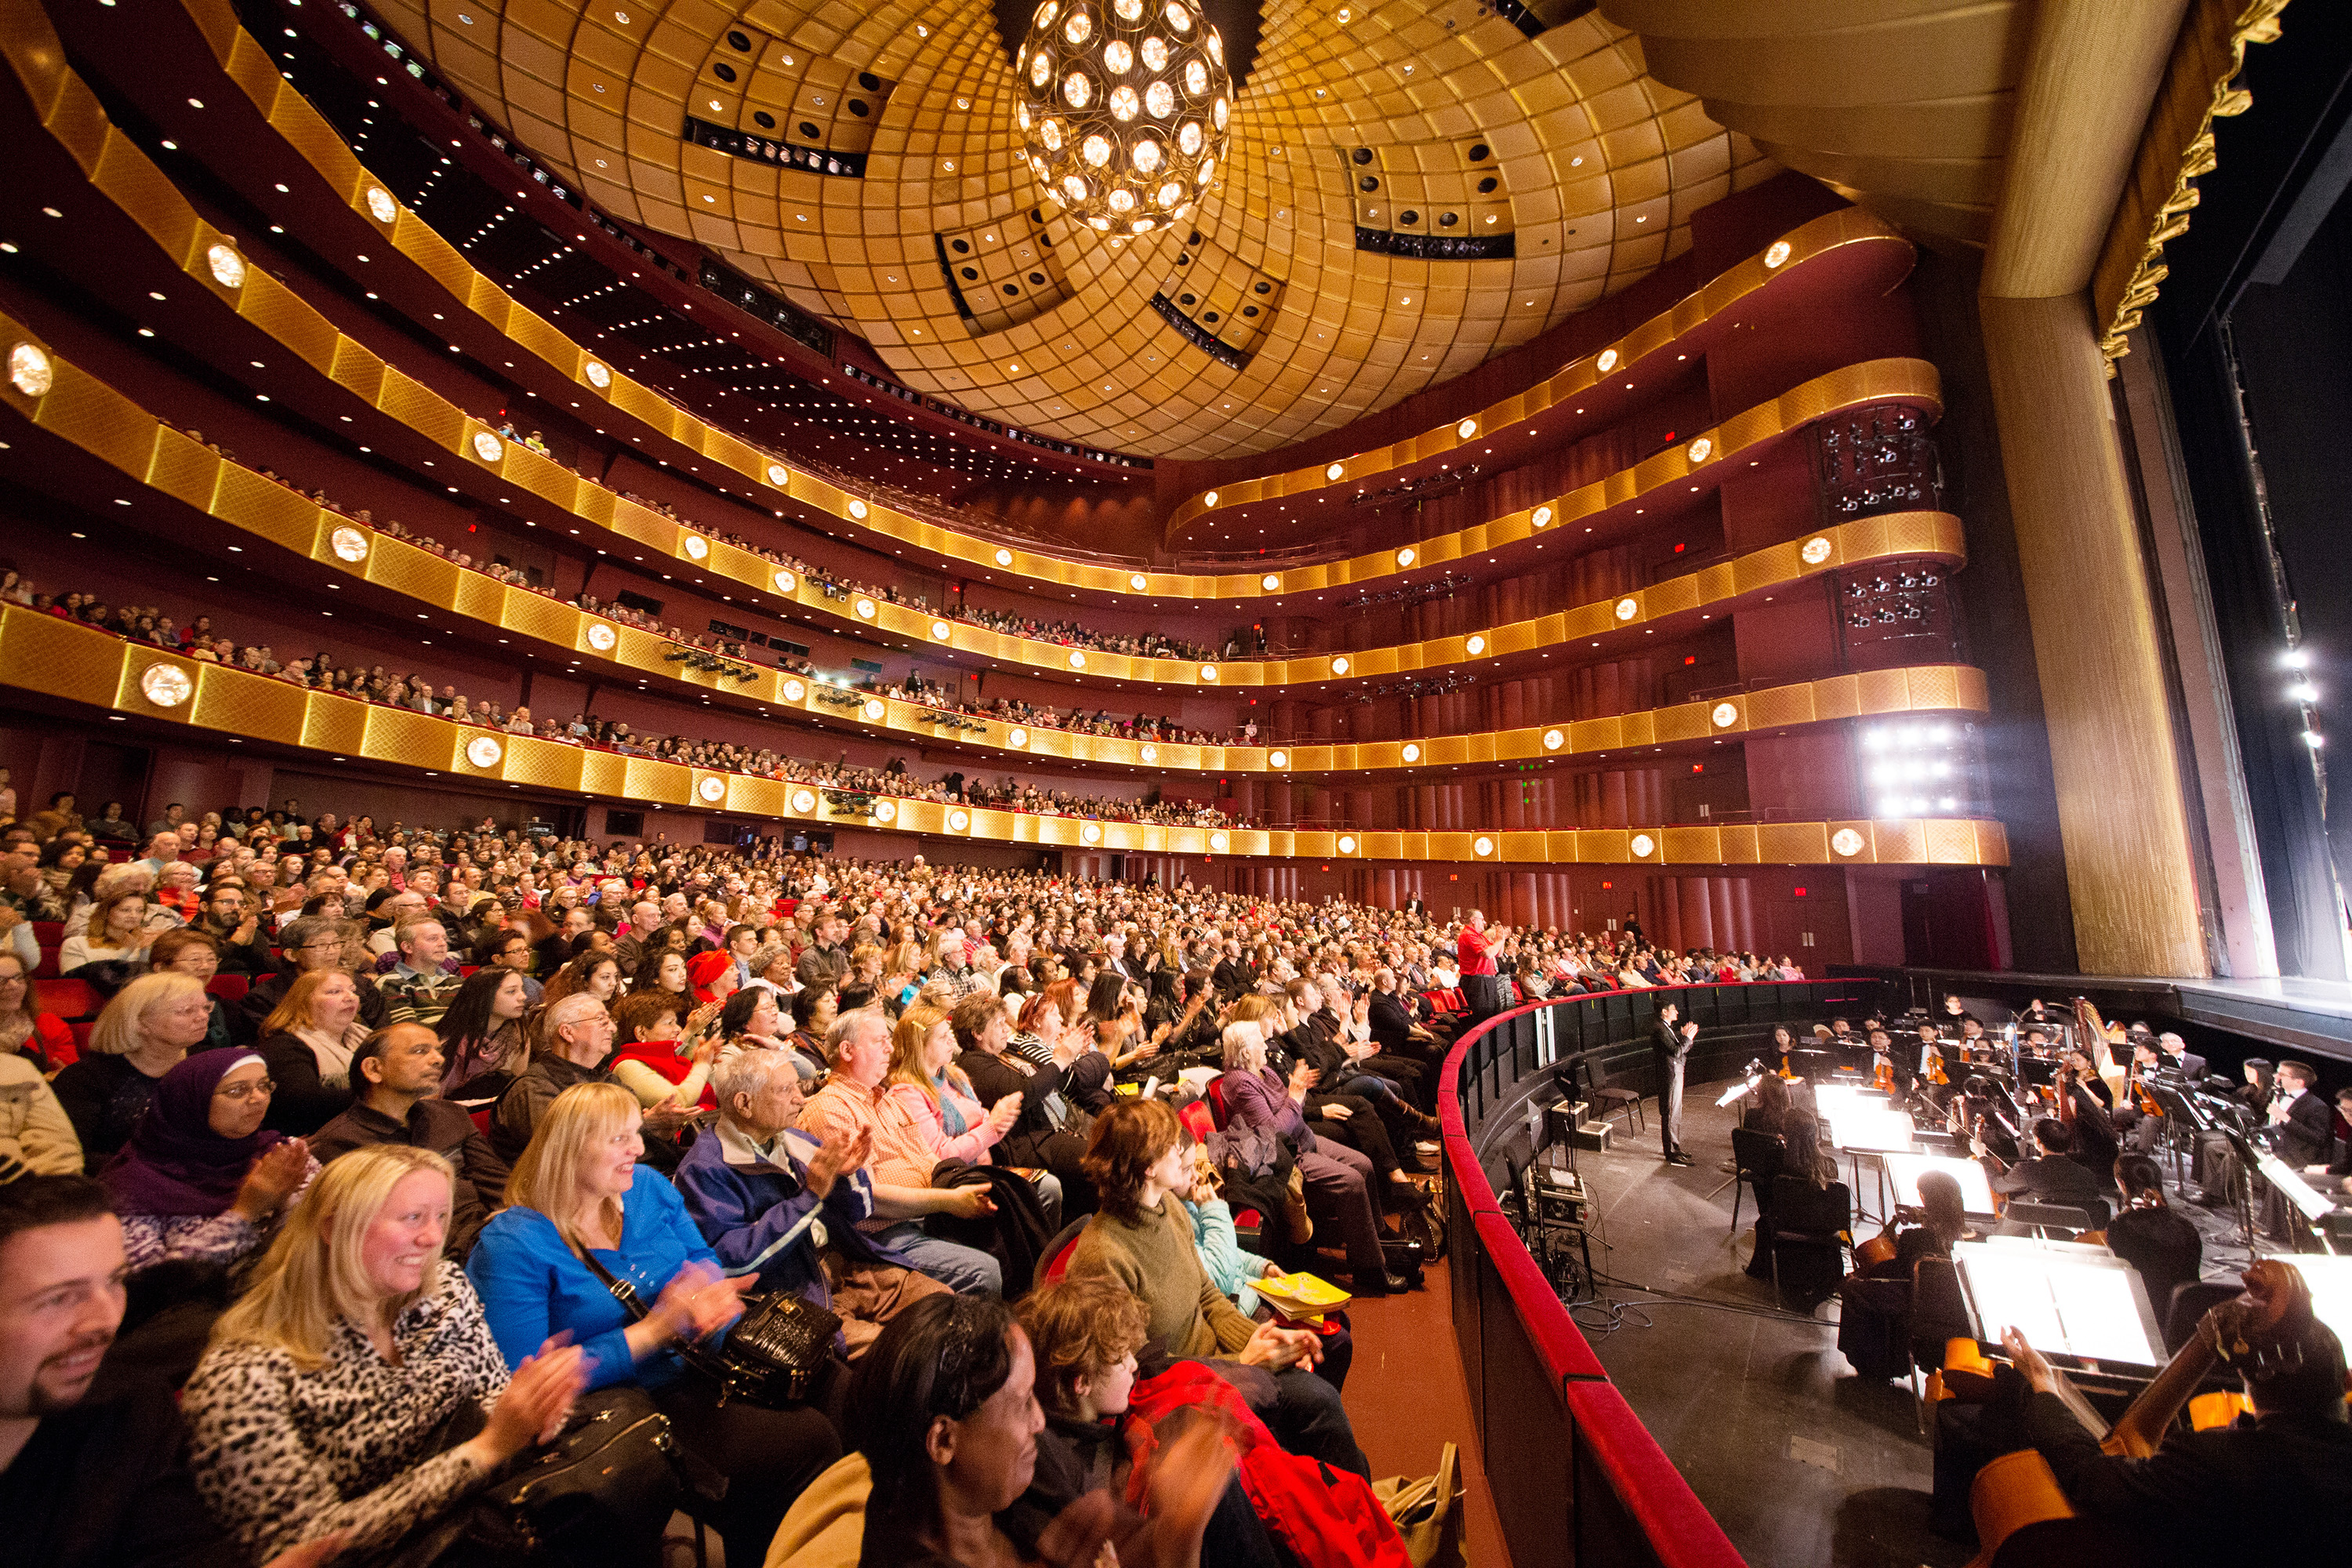 The audience at Shen Yun Performing Arts at the David H. Koch theater at Lincoln Center on March 5, 2016. (Larry Dye/Epoch Times)